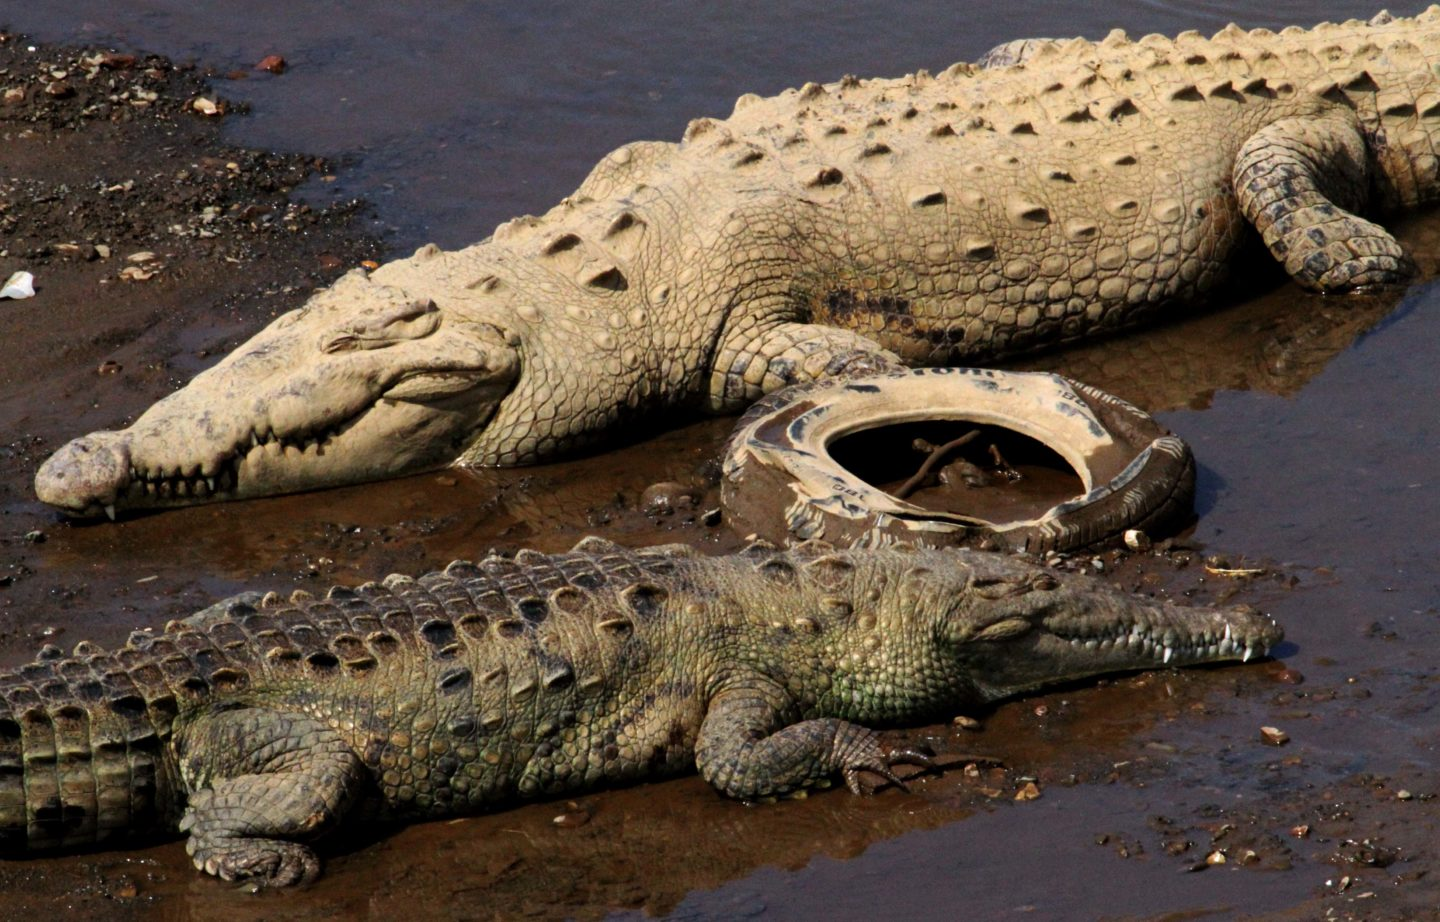 Pollution and crocodiles, Costa Rica